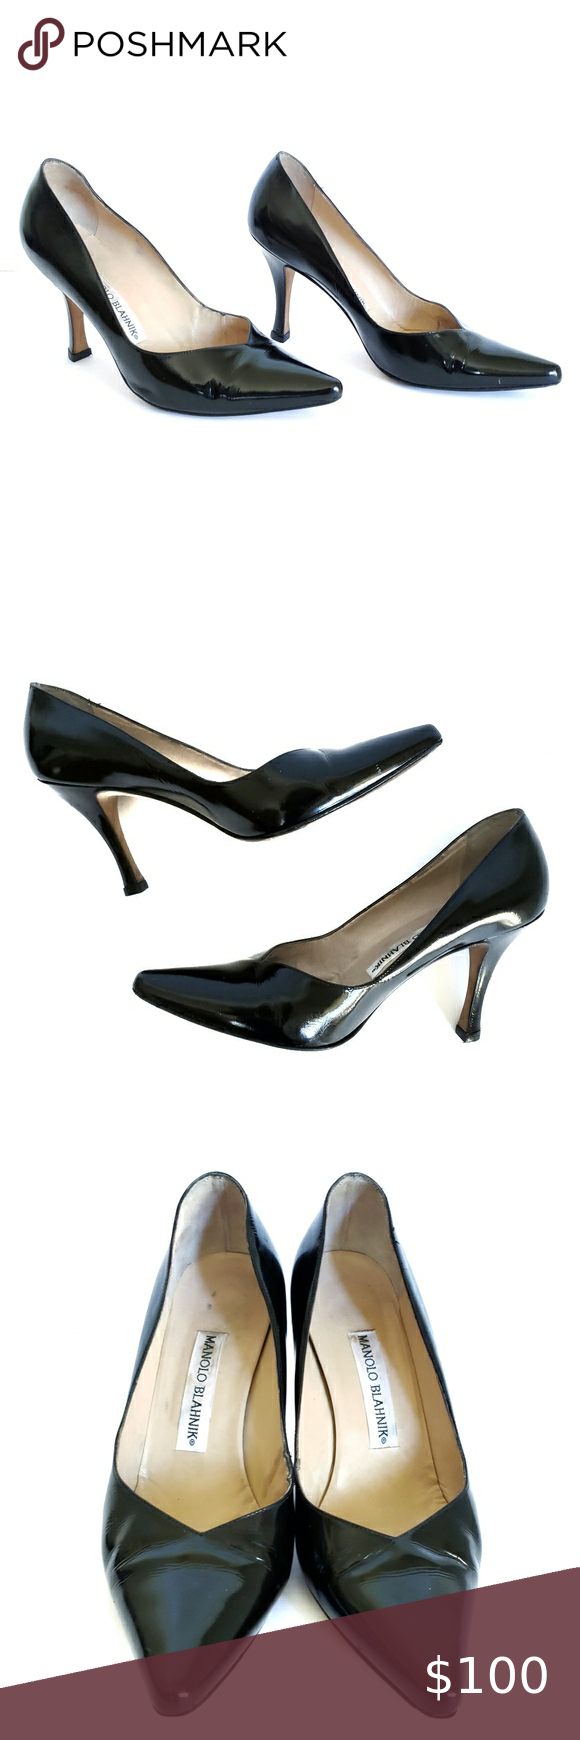 Women/'s High Heel Floral Print Patent Leather Pointed Shoes Pumps Classics US Sz